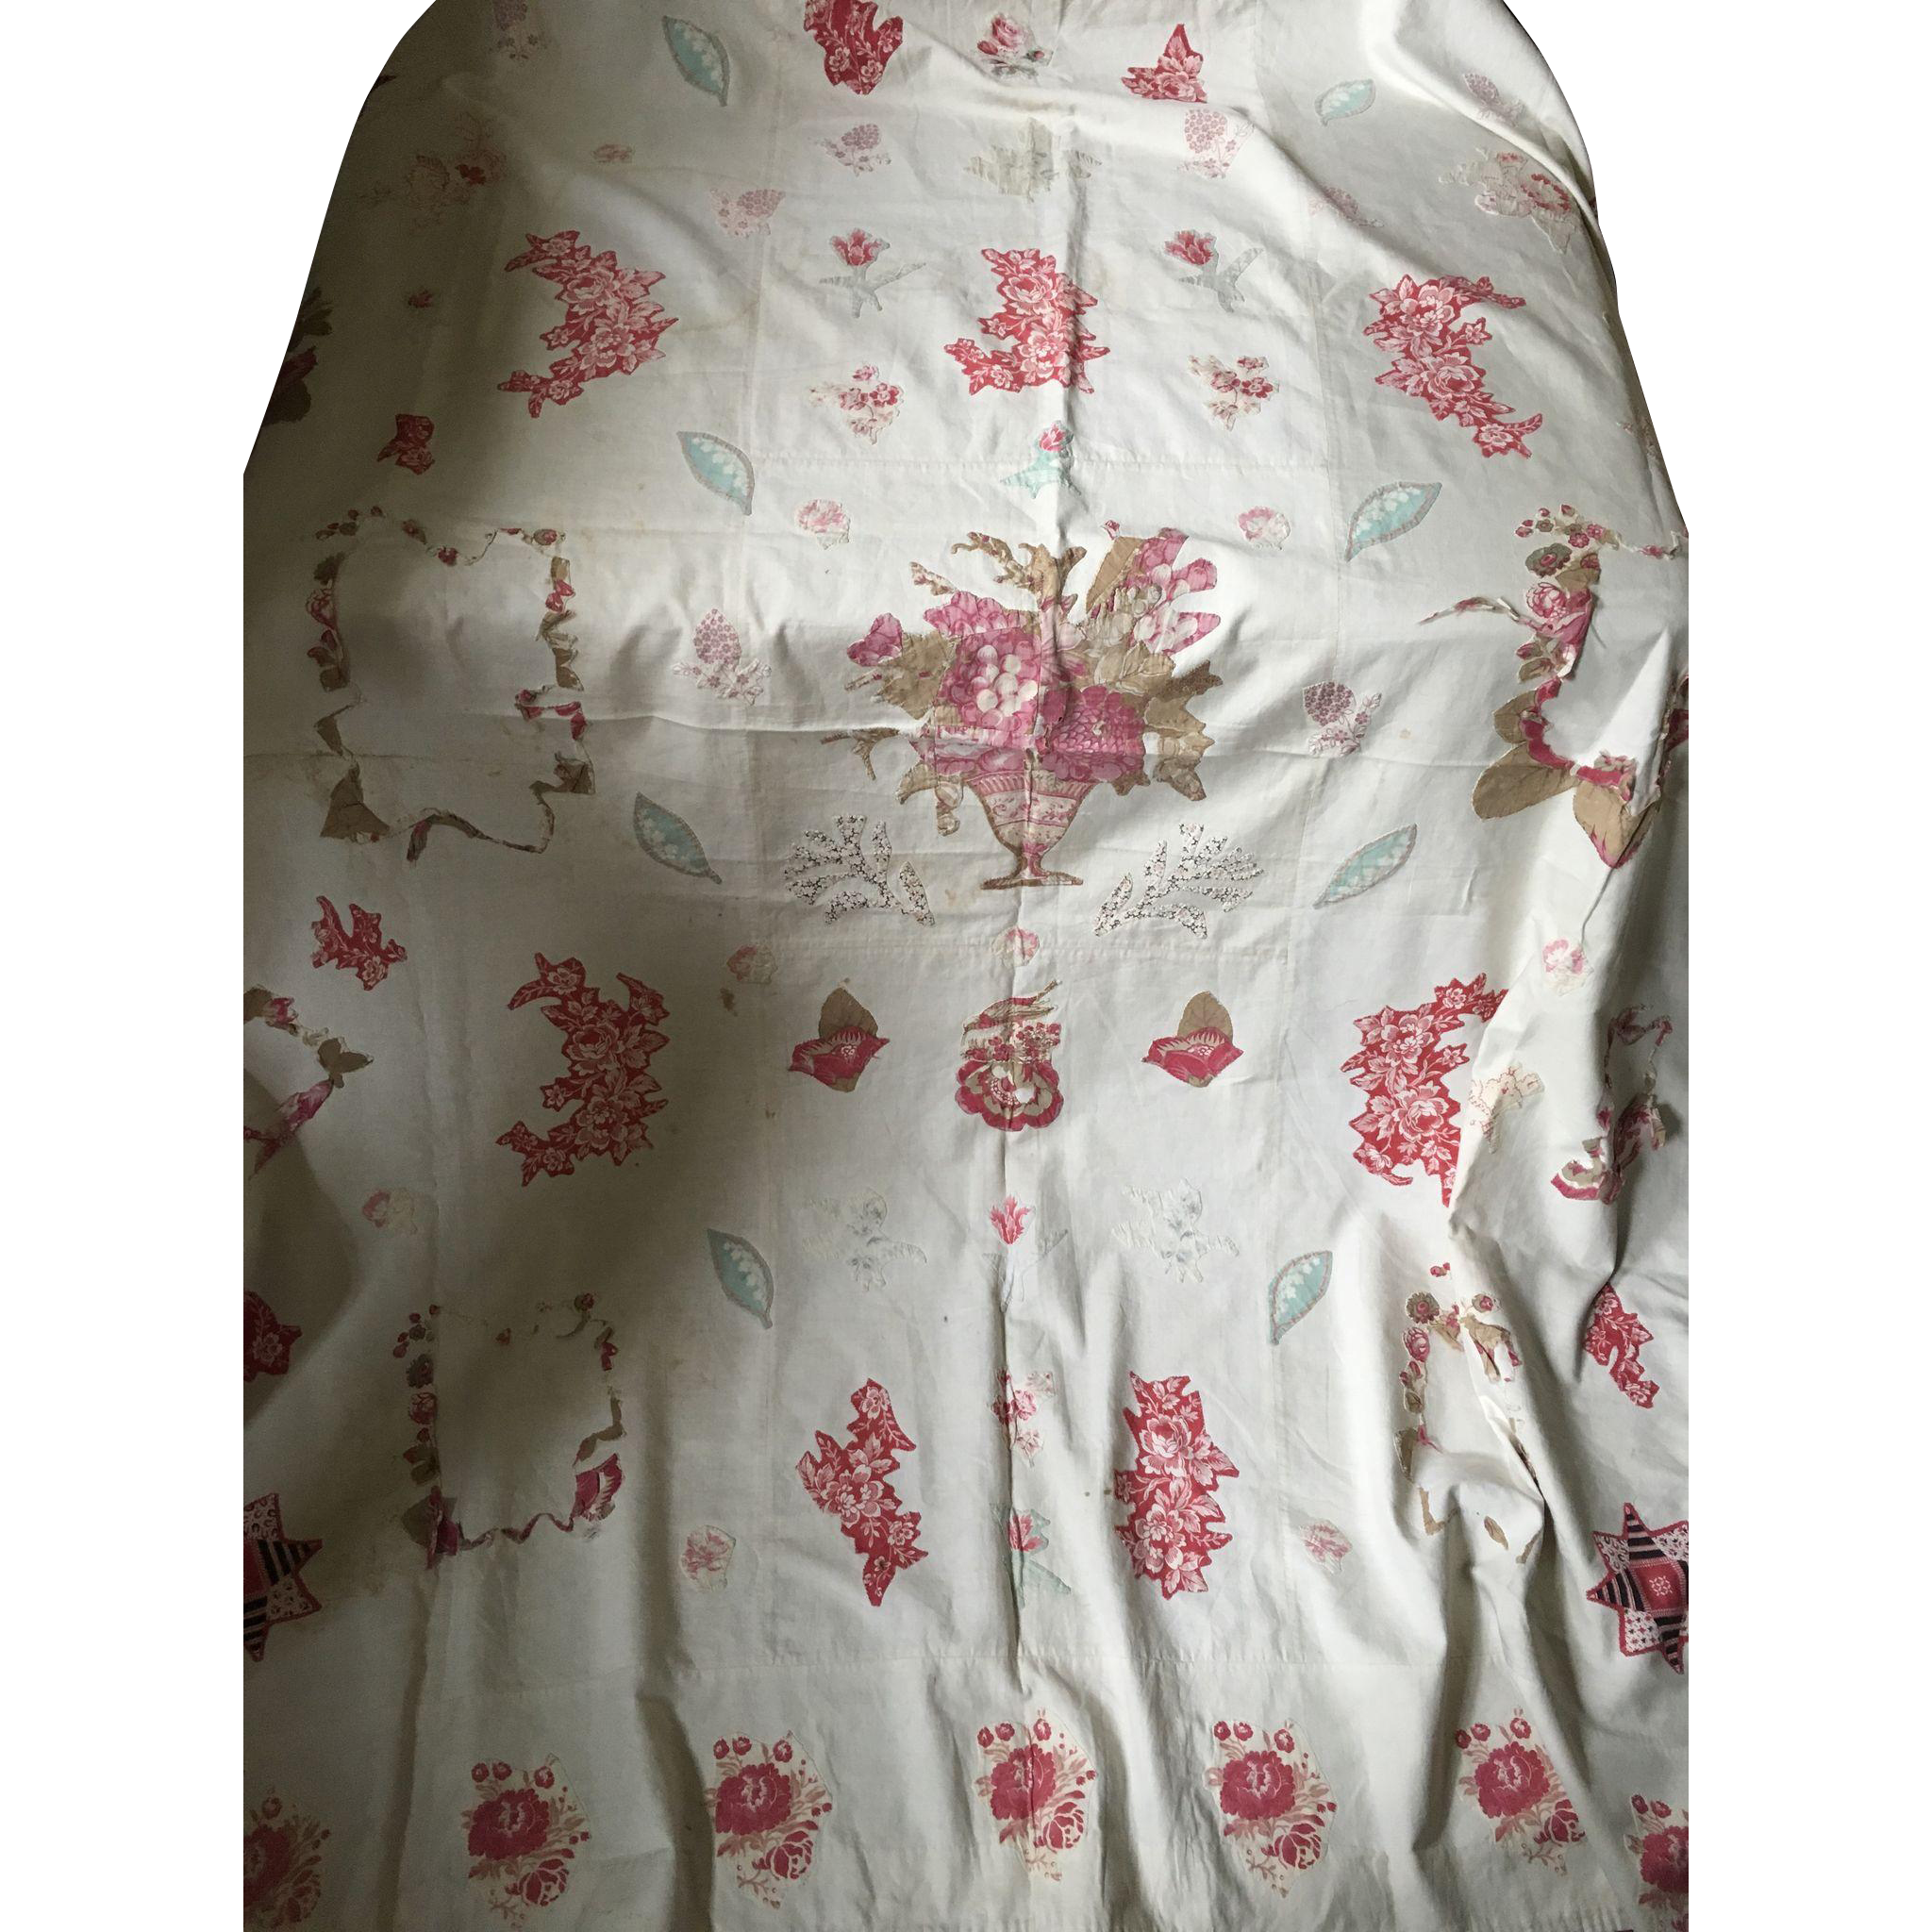 Broderie Perse Quilt Top - 19th Century for study or restoration